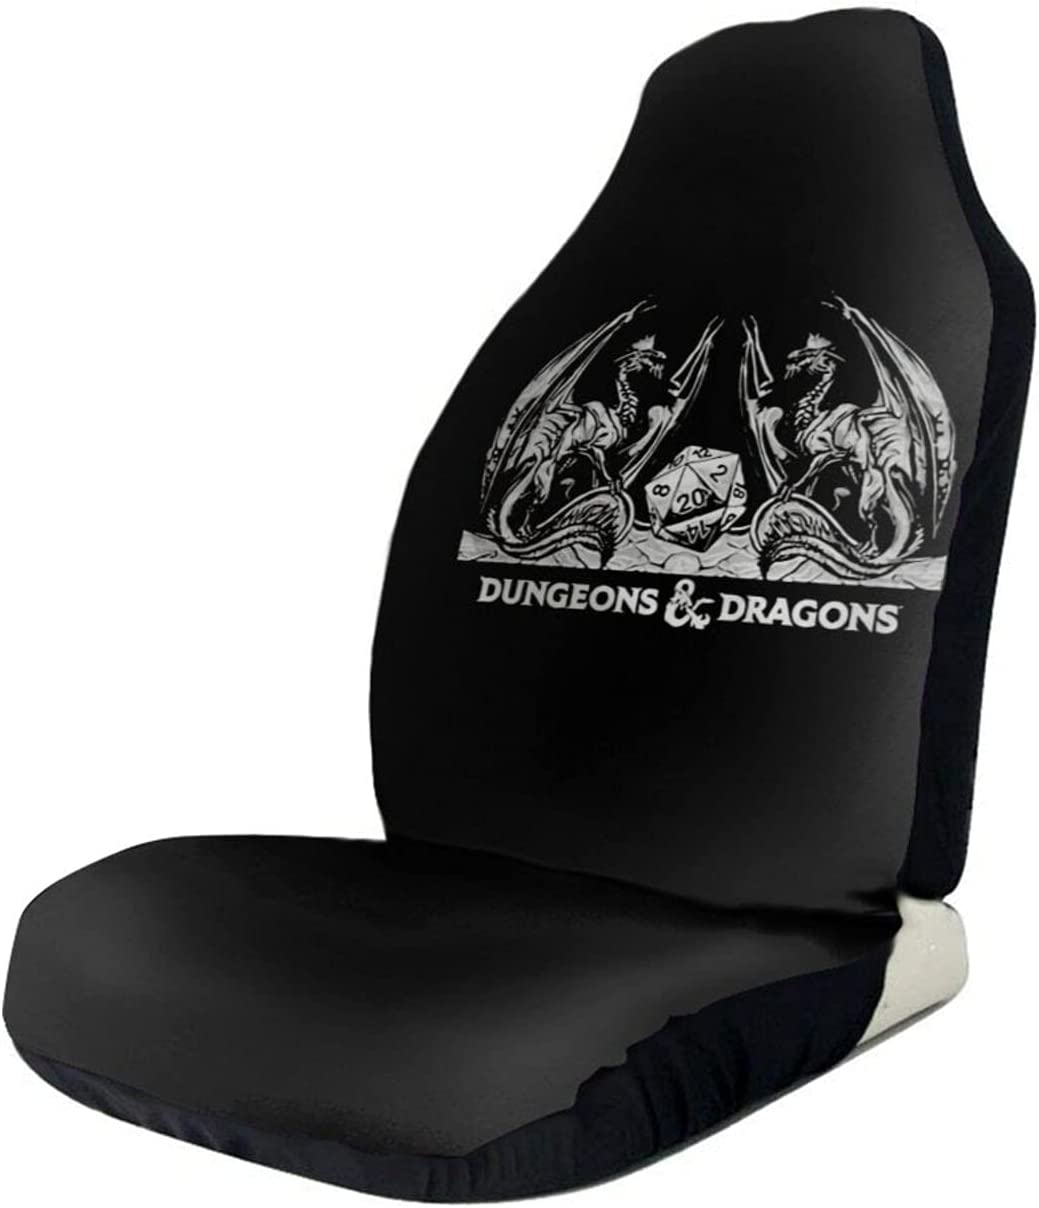 Dungeons and Dragons Anti-Skid Waterproof Special Campaign Car Cover Fit Seat Atlanta Mall